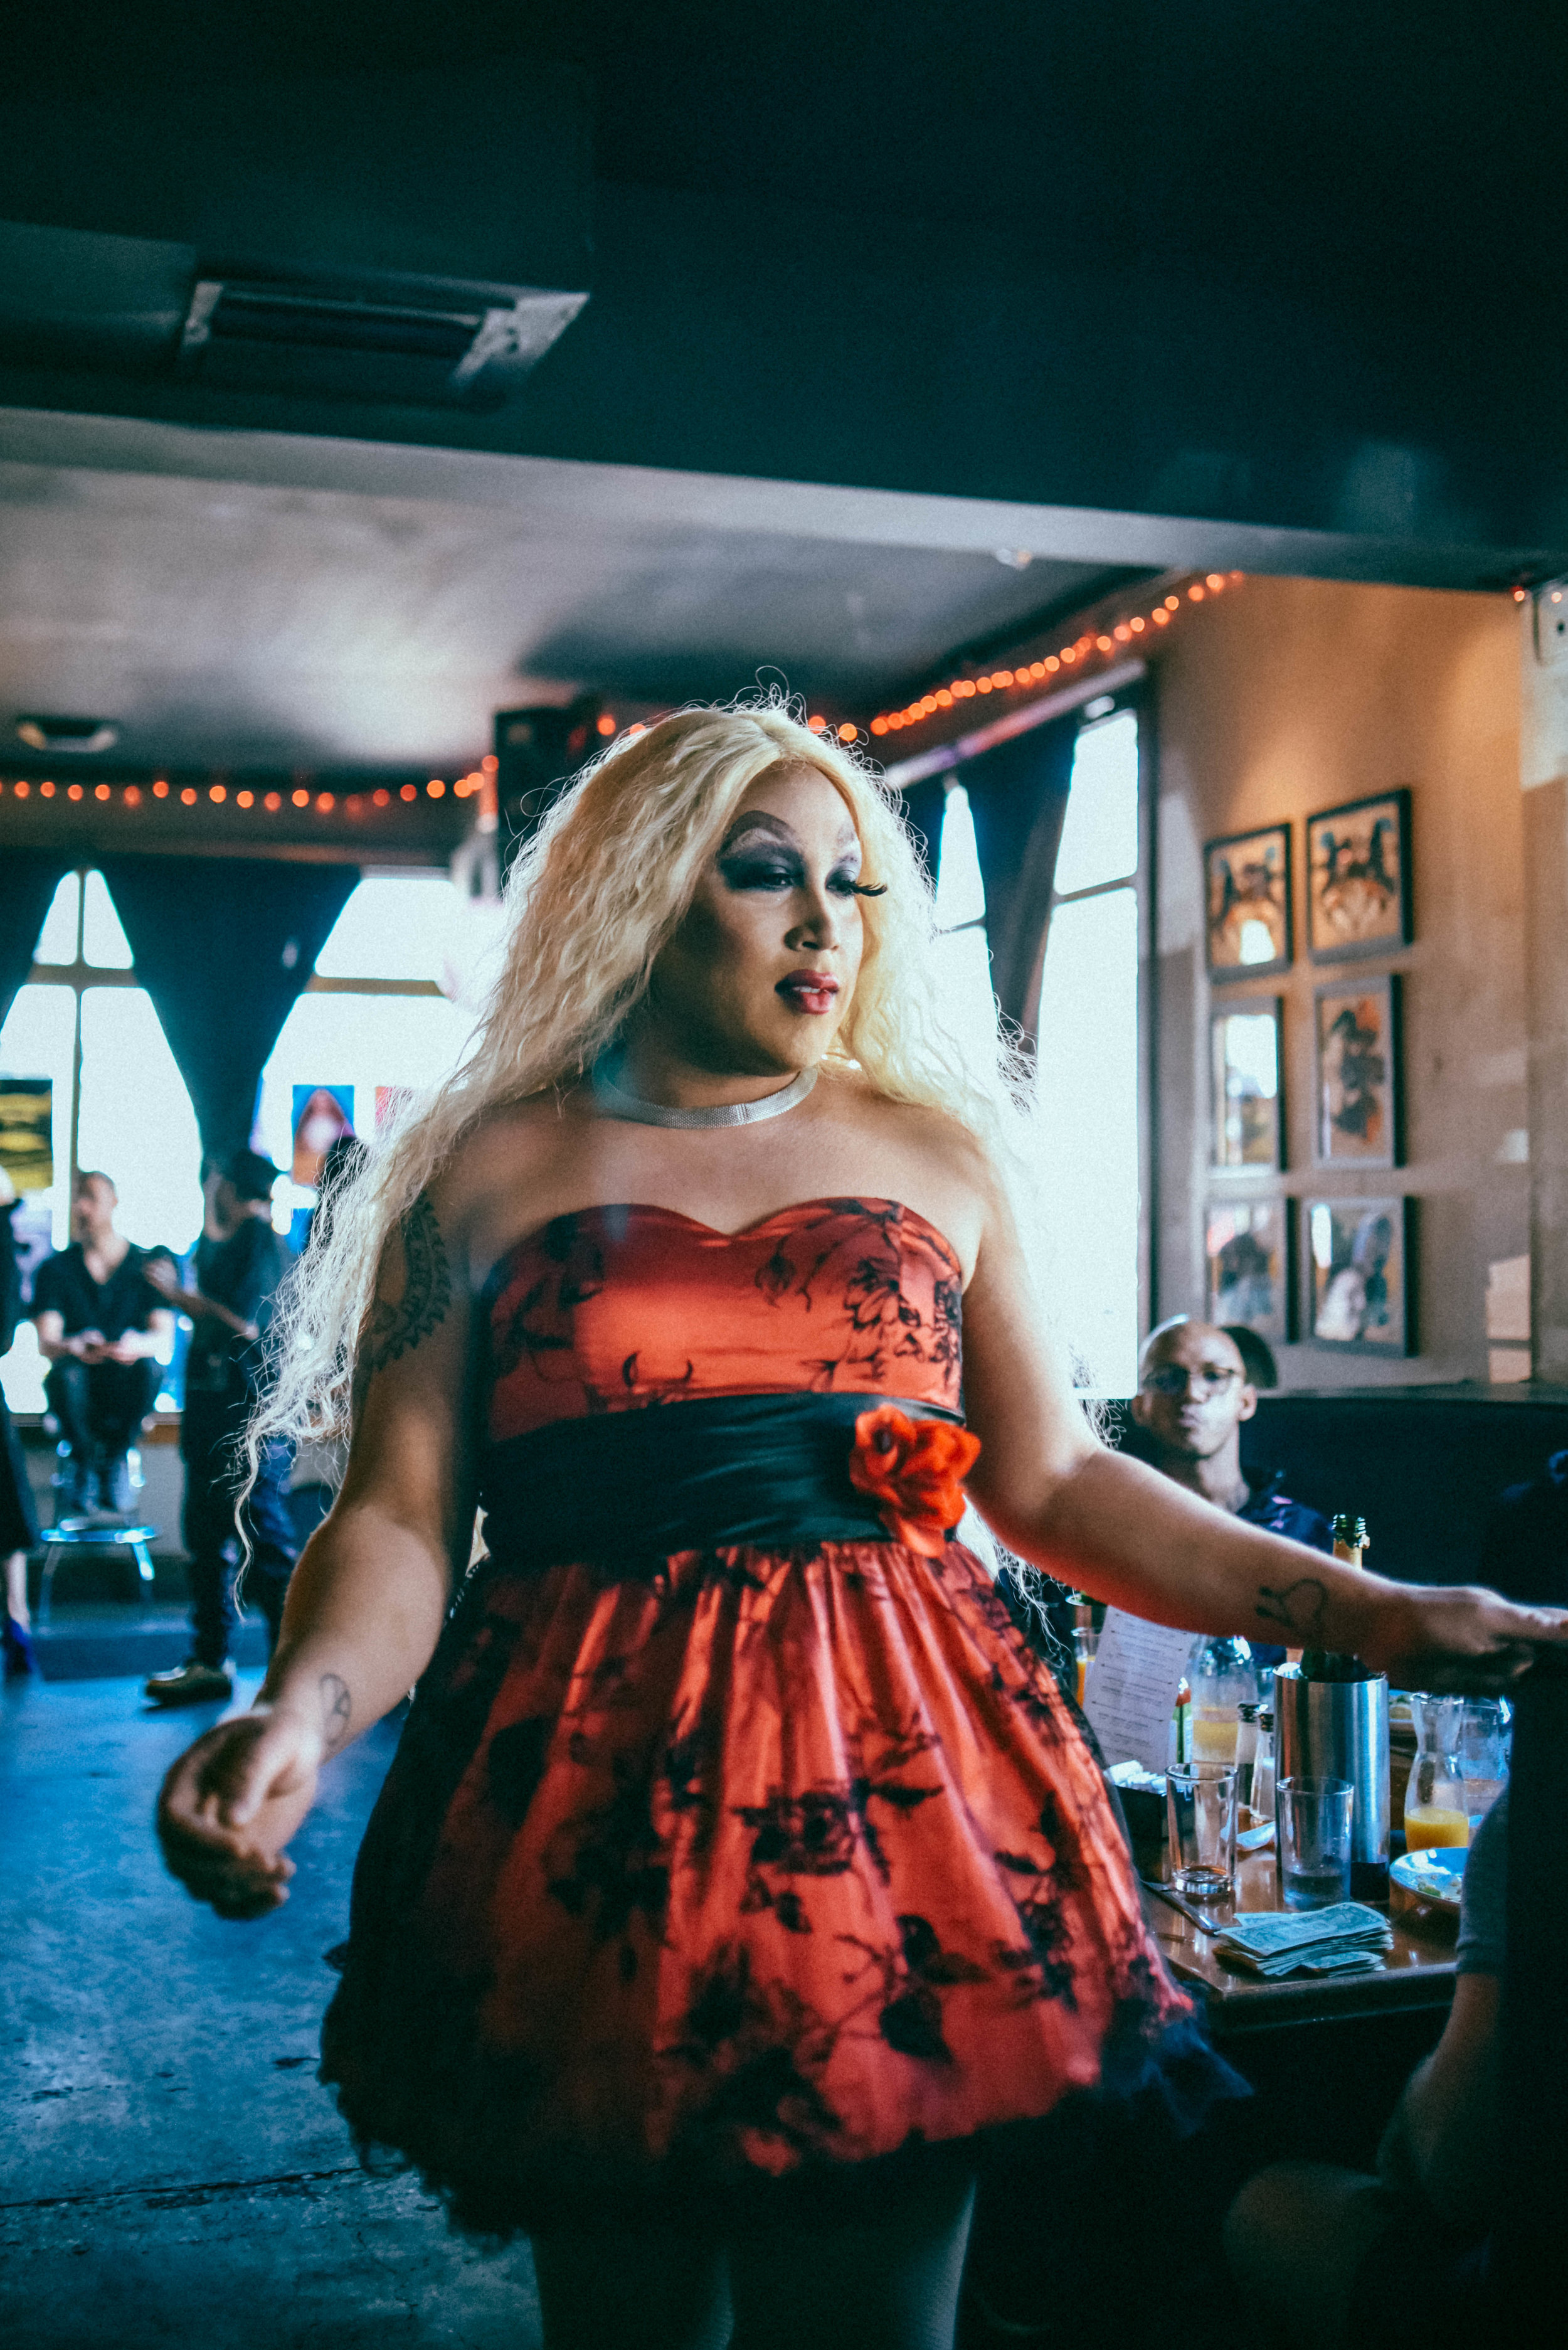 DragBrunch-Nanna-3.jpg